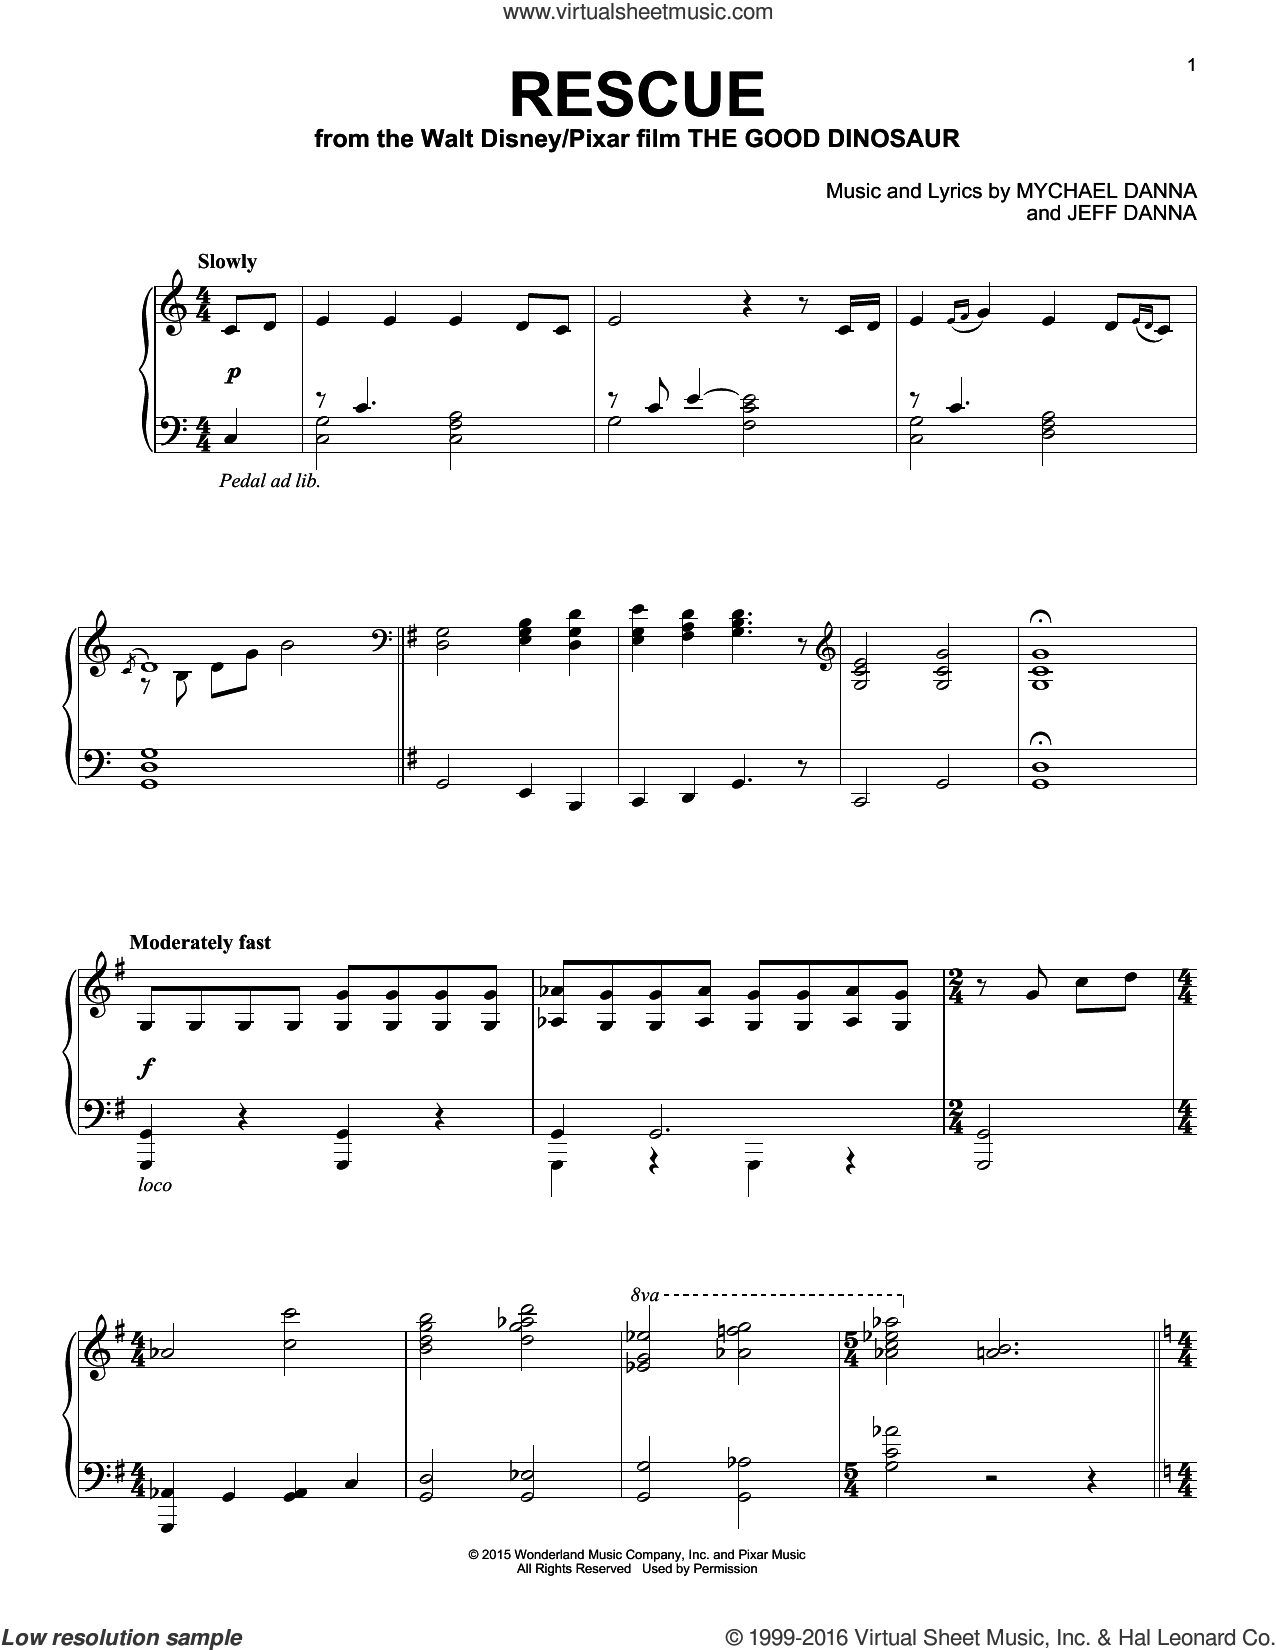 Rescue sheet music for piano solo by Mychael & Jeff Danna, Jeff Danna and Mychael Danna, intermediate skill level